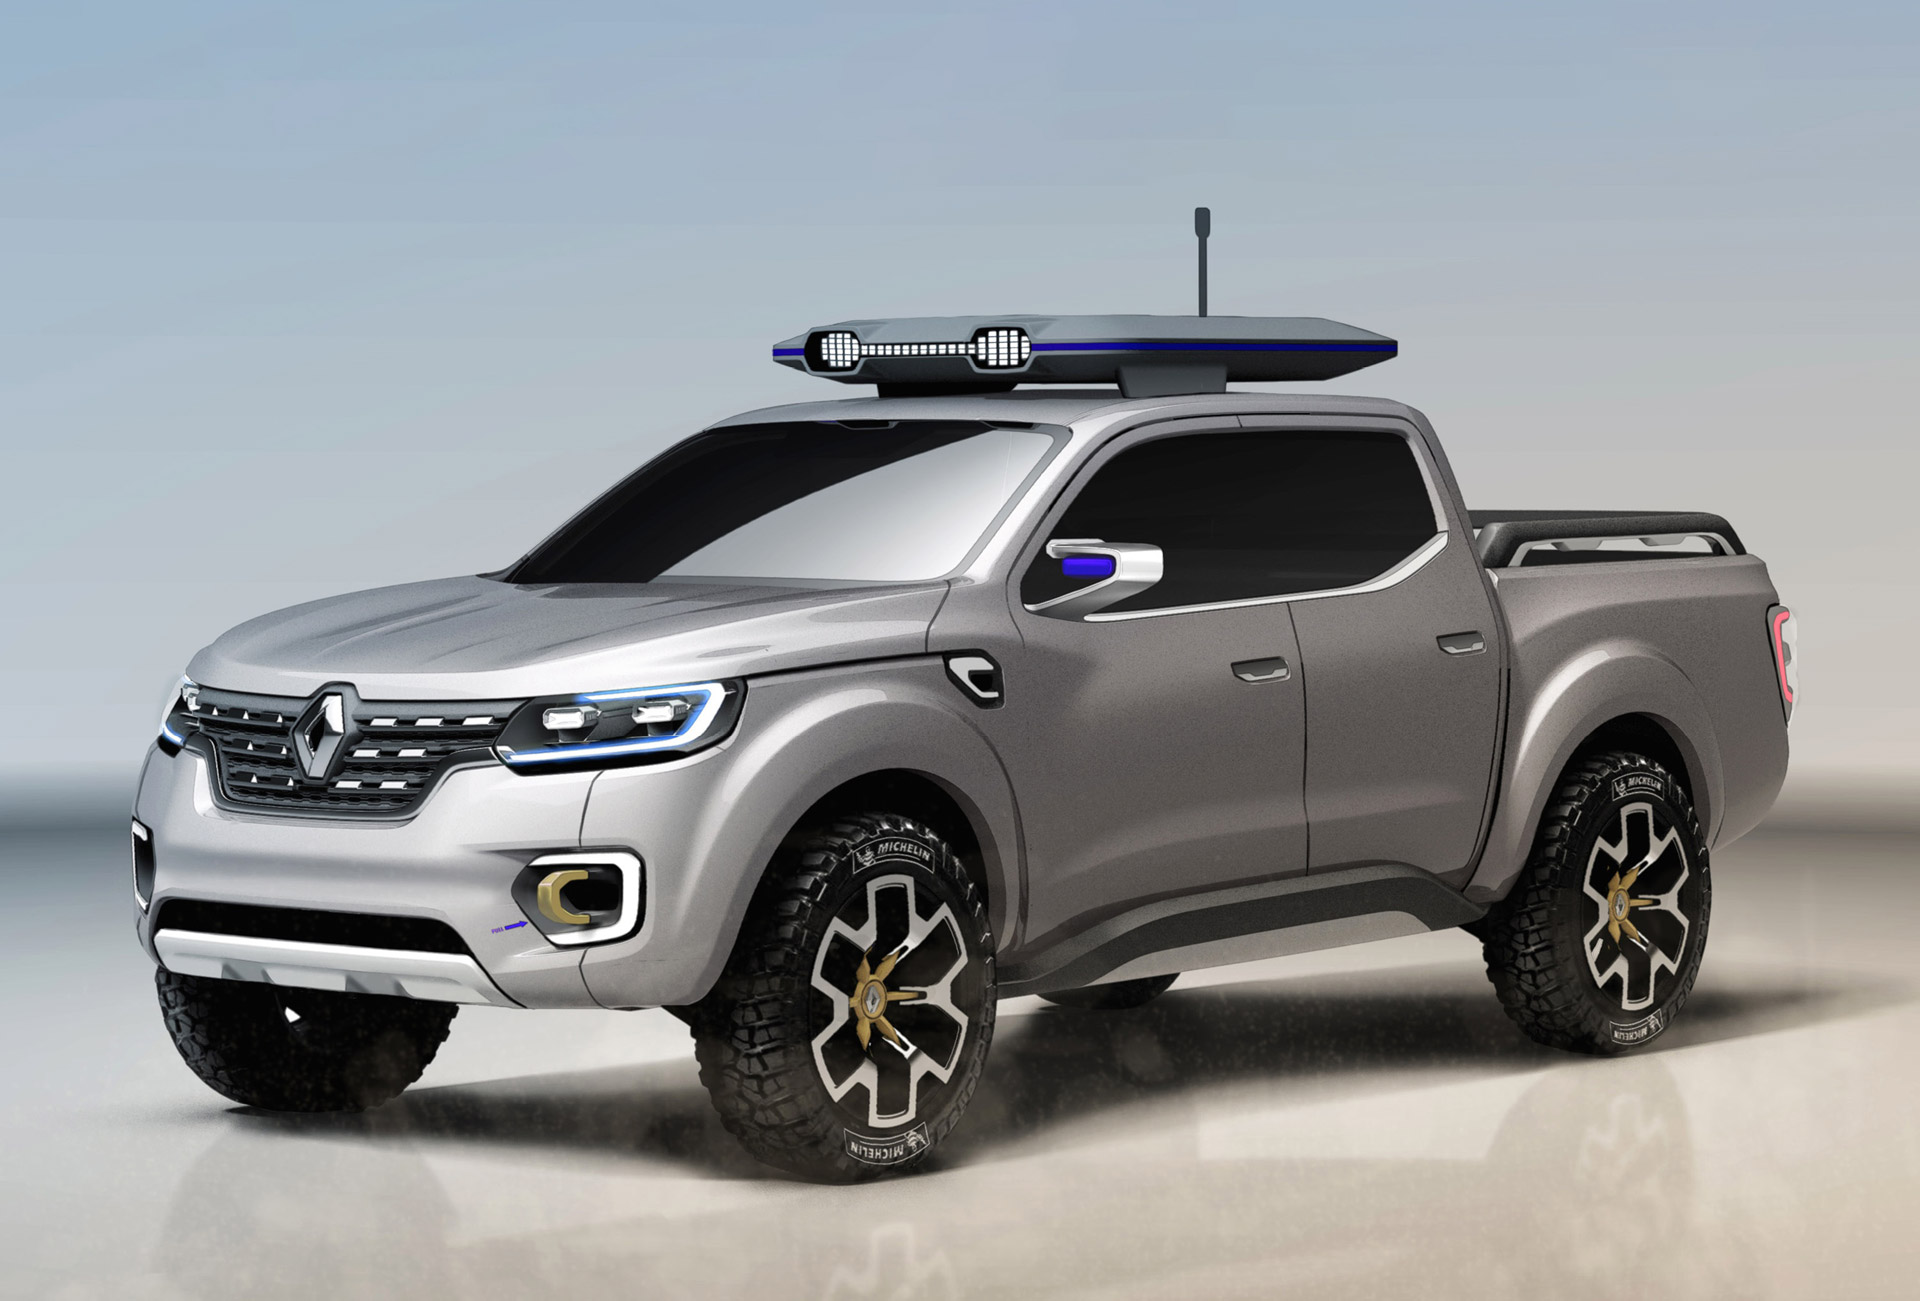 Renault Alaskan Concept Previews New Pickup Developed Jointly With ...